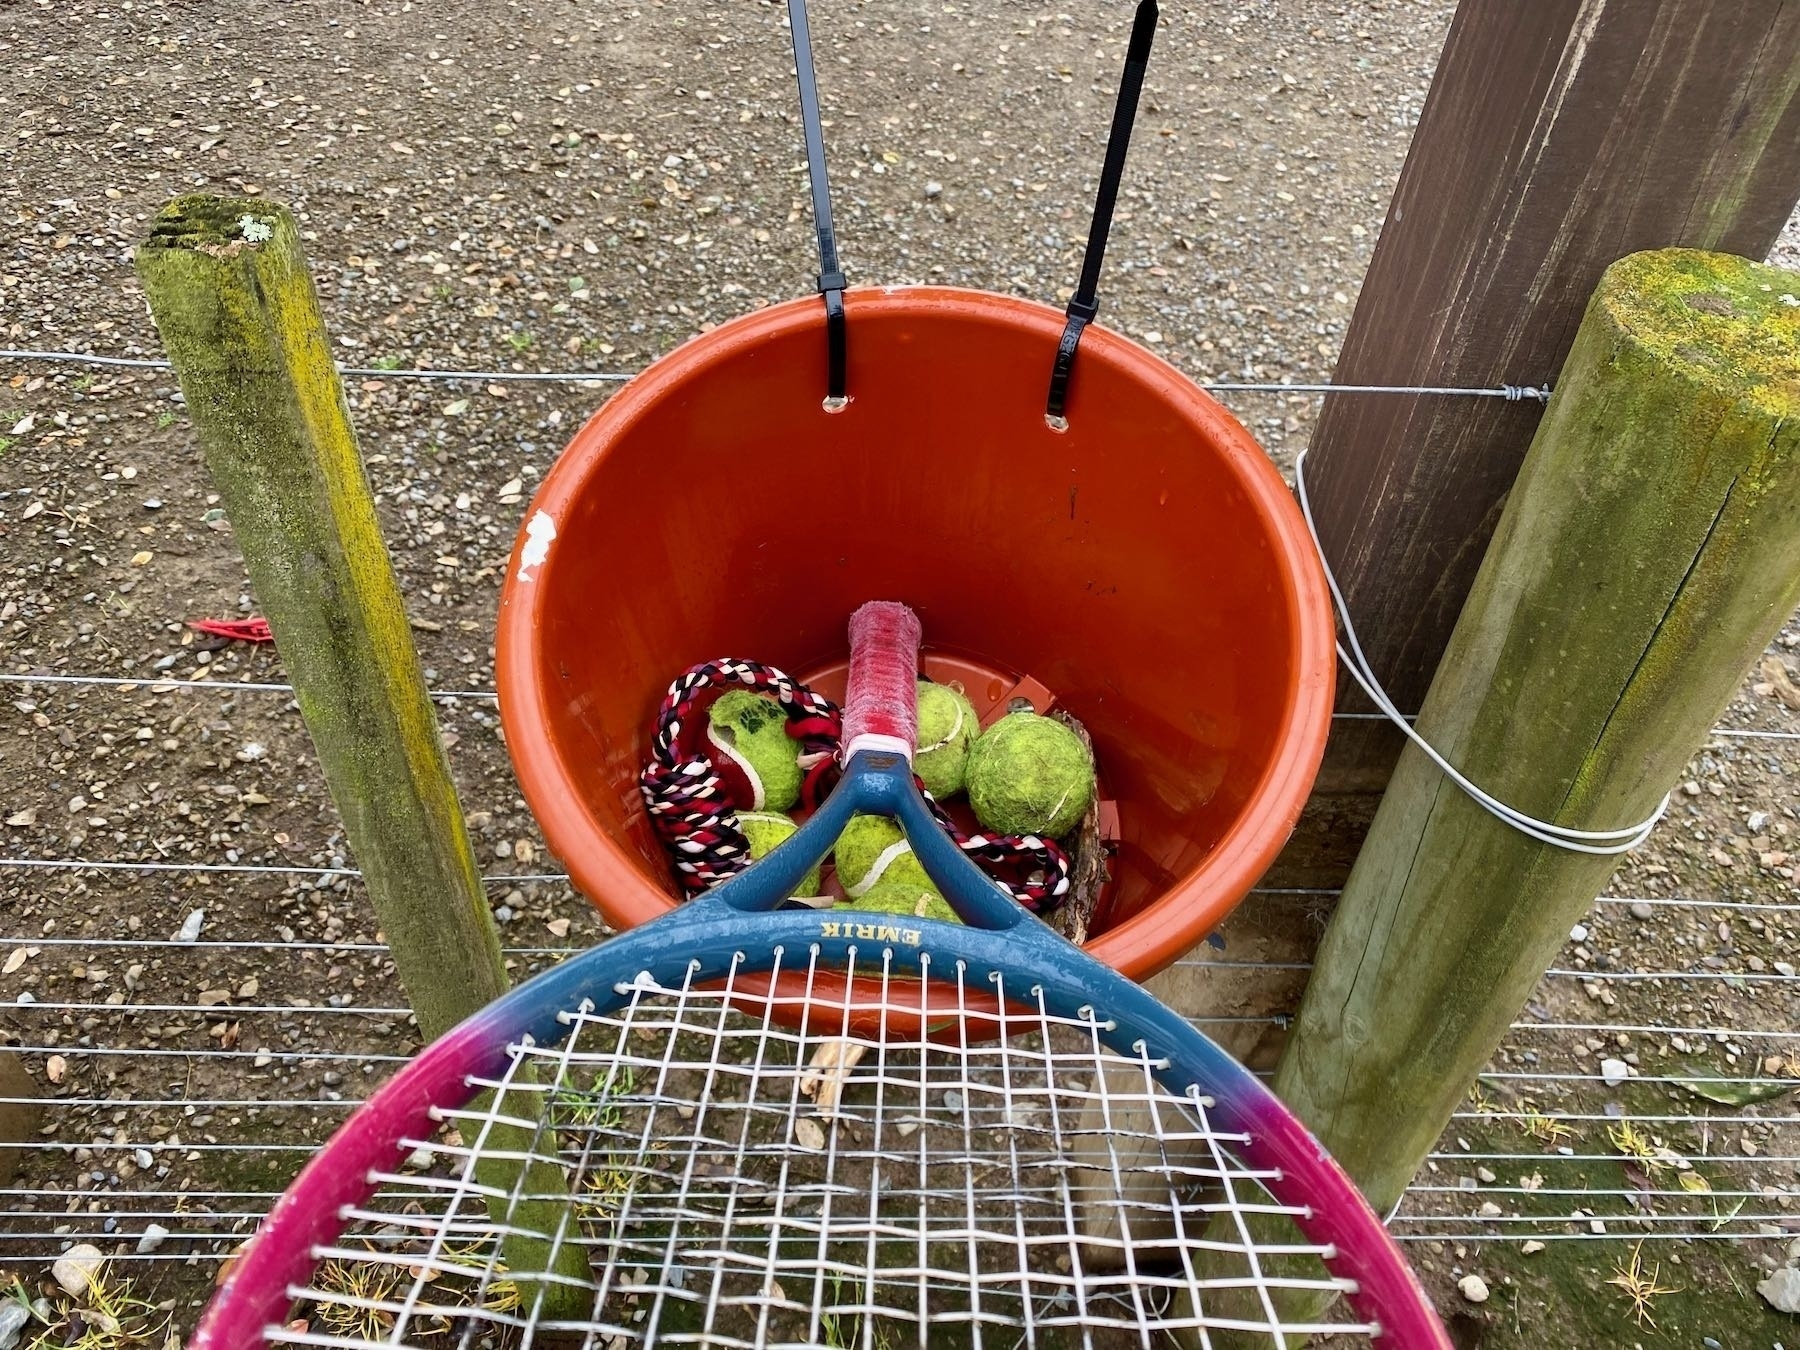 The Good Dog Library bucket also contains tennis balls and tug toys.